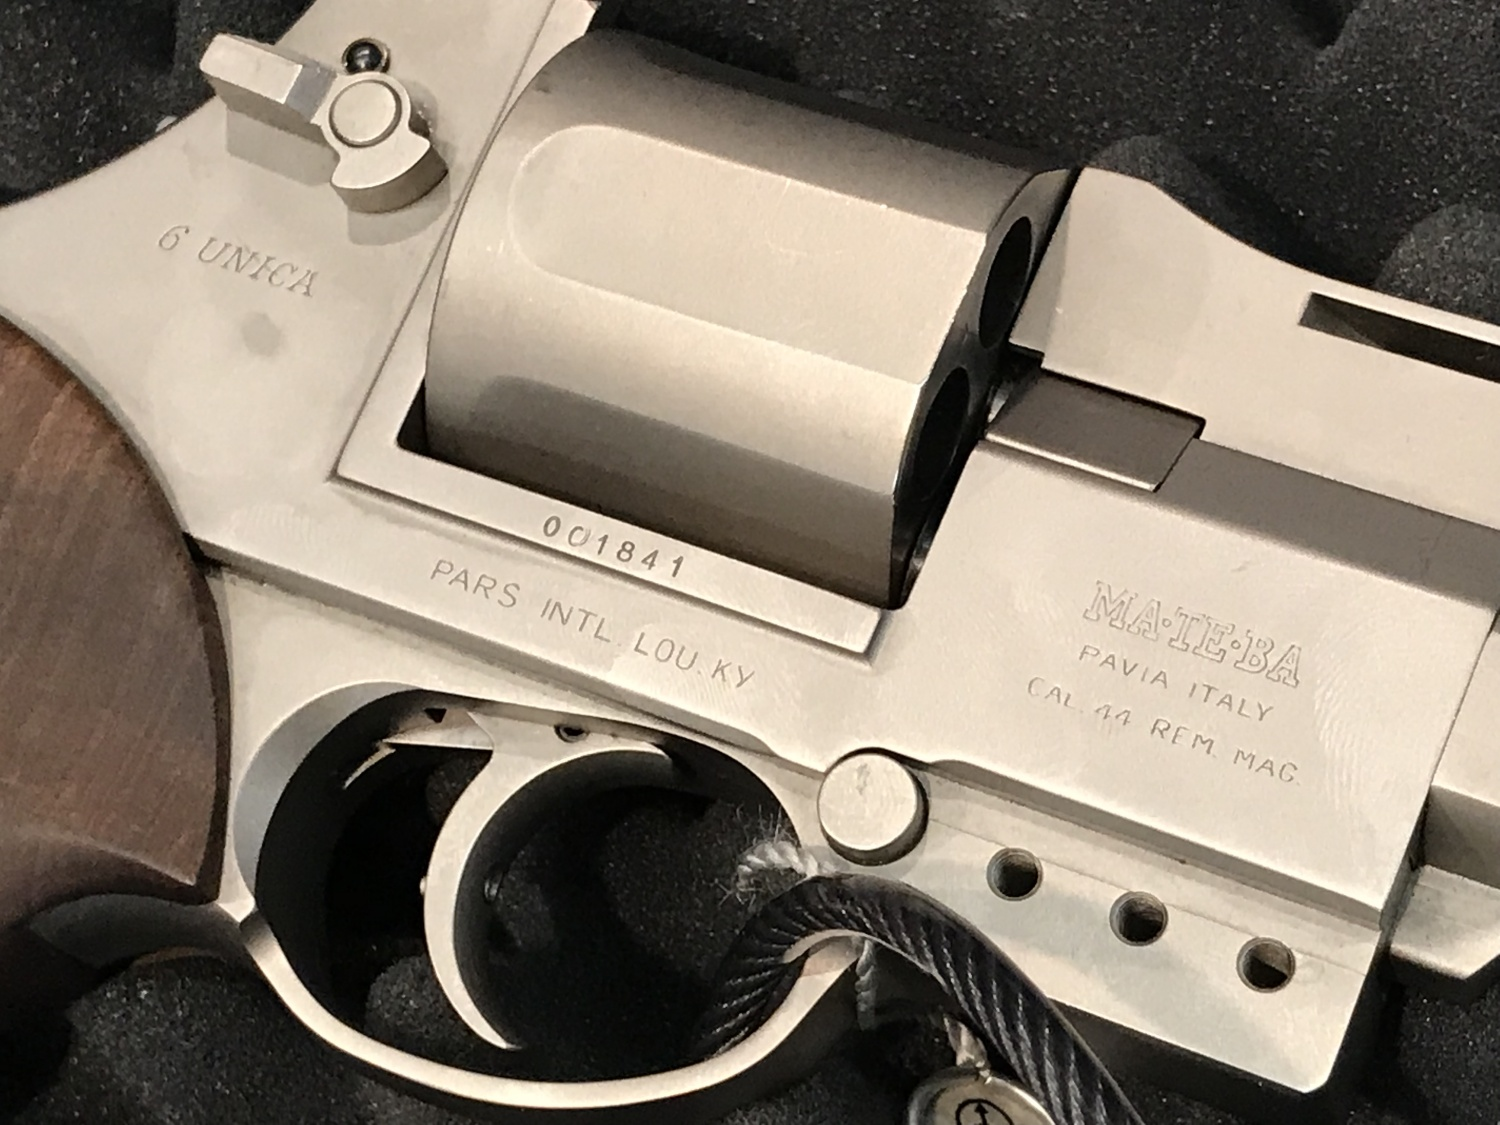 close up of a stainless 6 Unica autorevolver